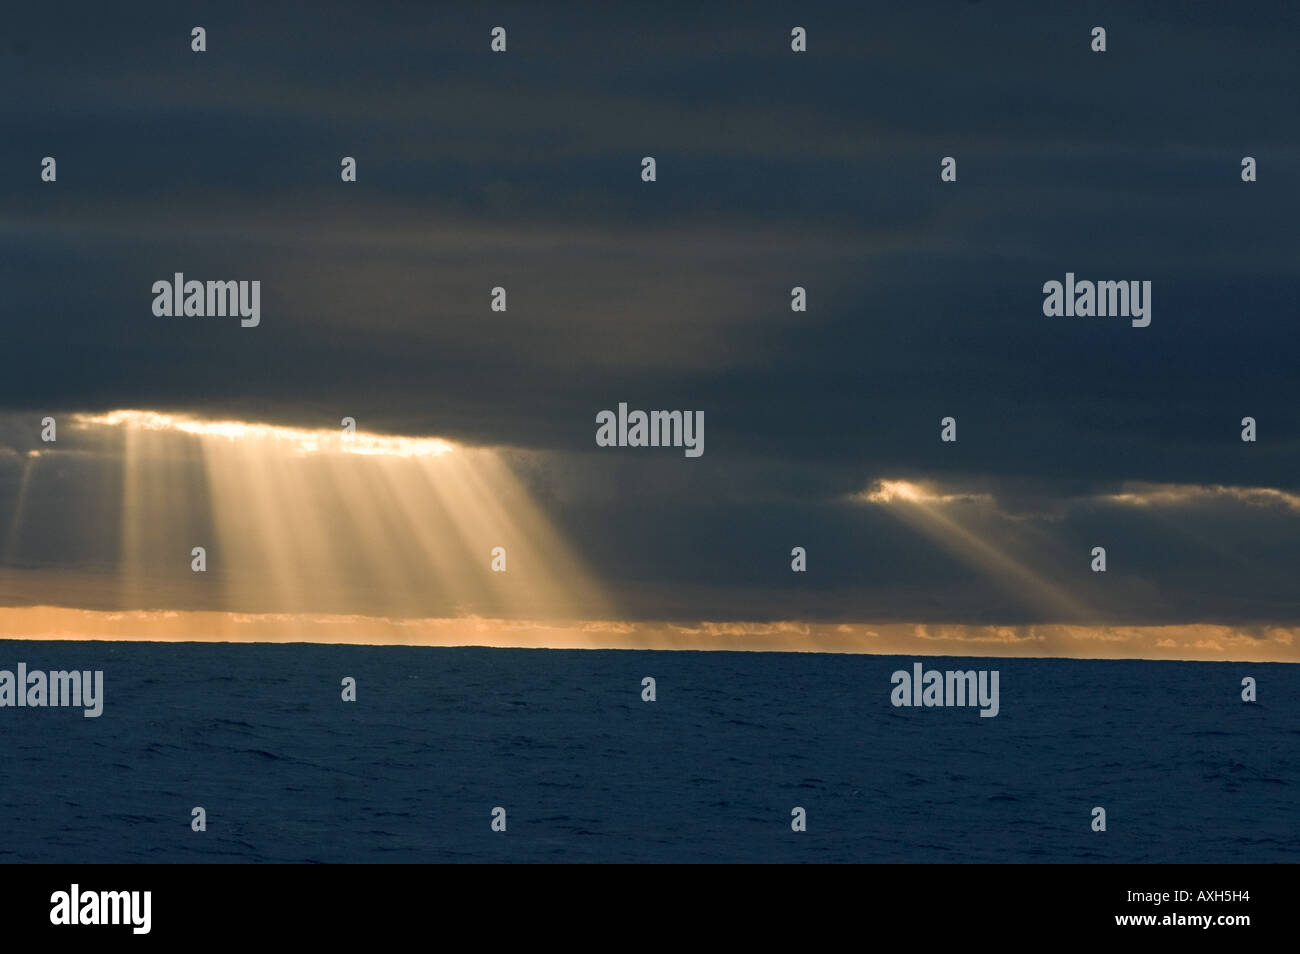 Sun rays between clouds in south Pacific Ocean. - Stock Image